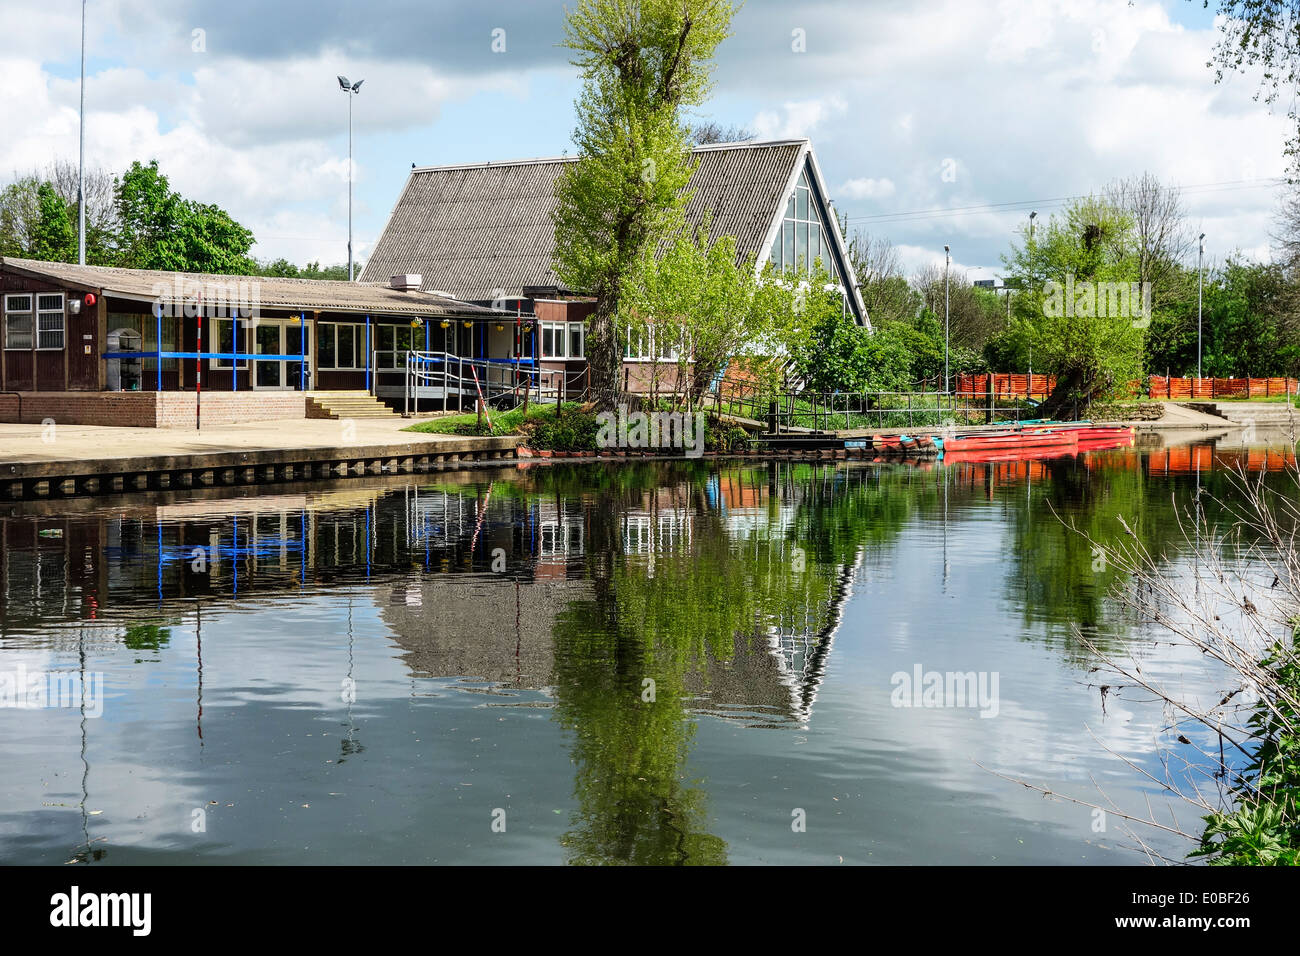 The Leicester Outdoor Pursuits Centre. - Stock Image